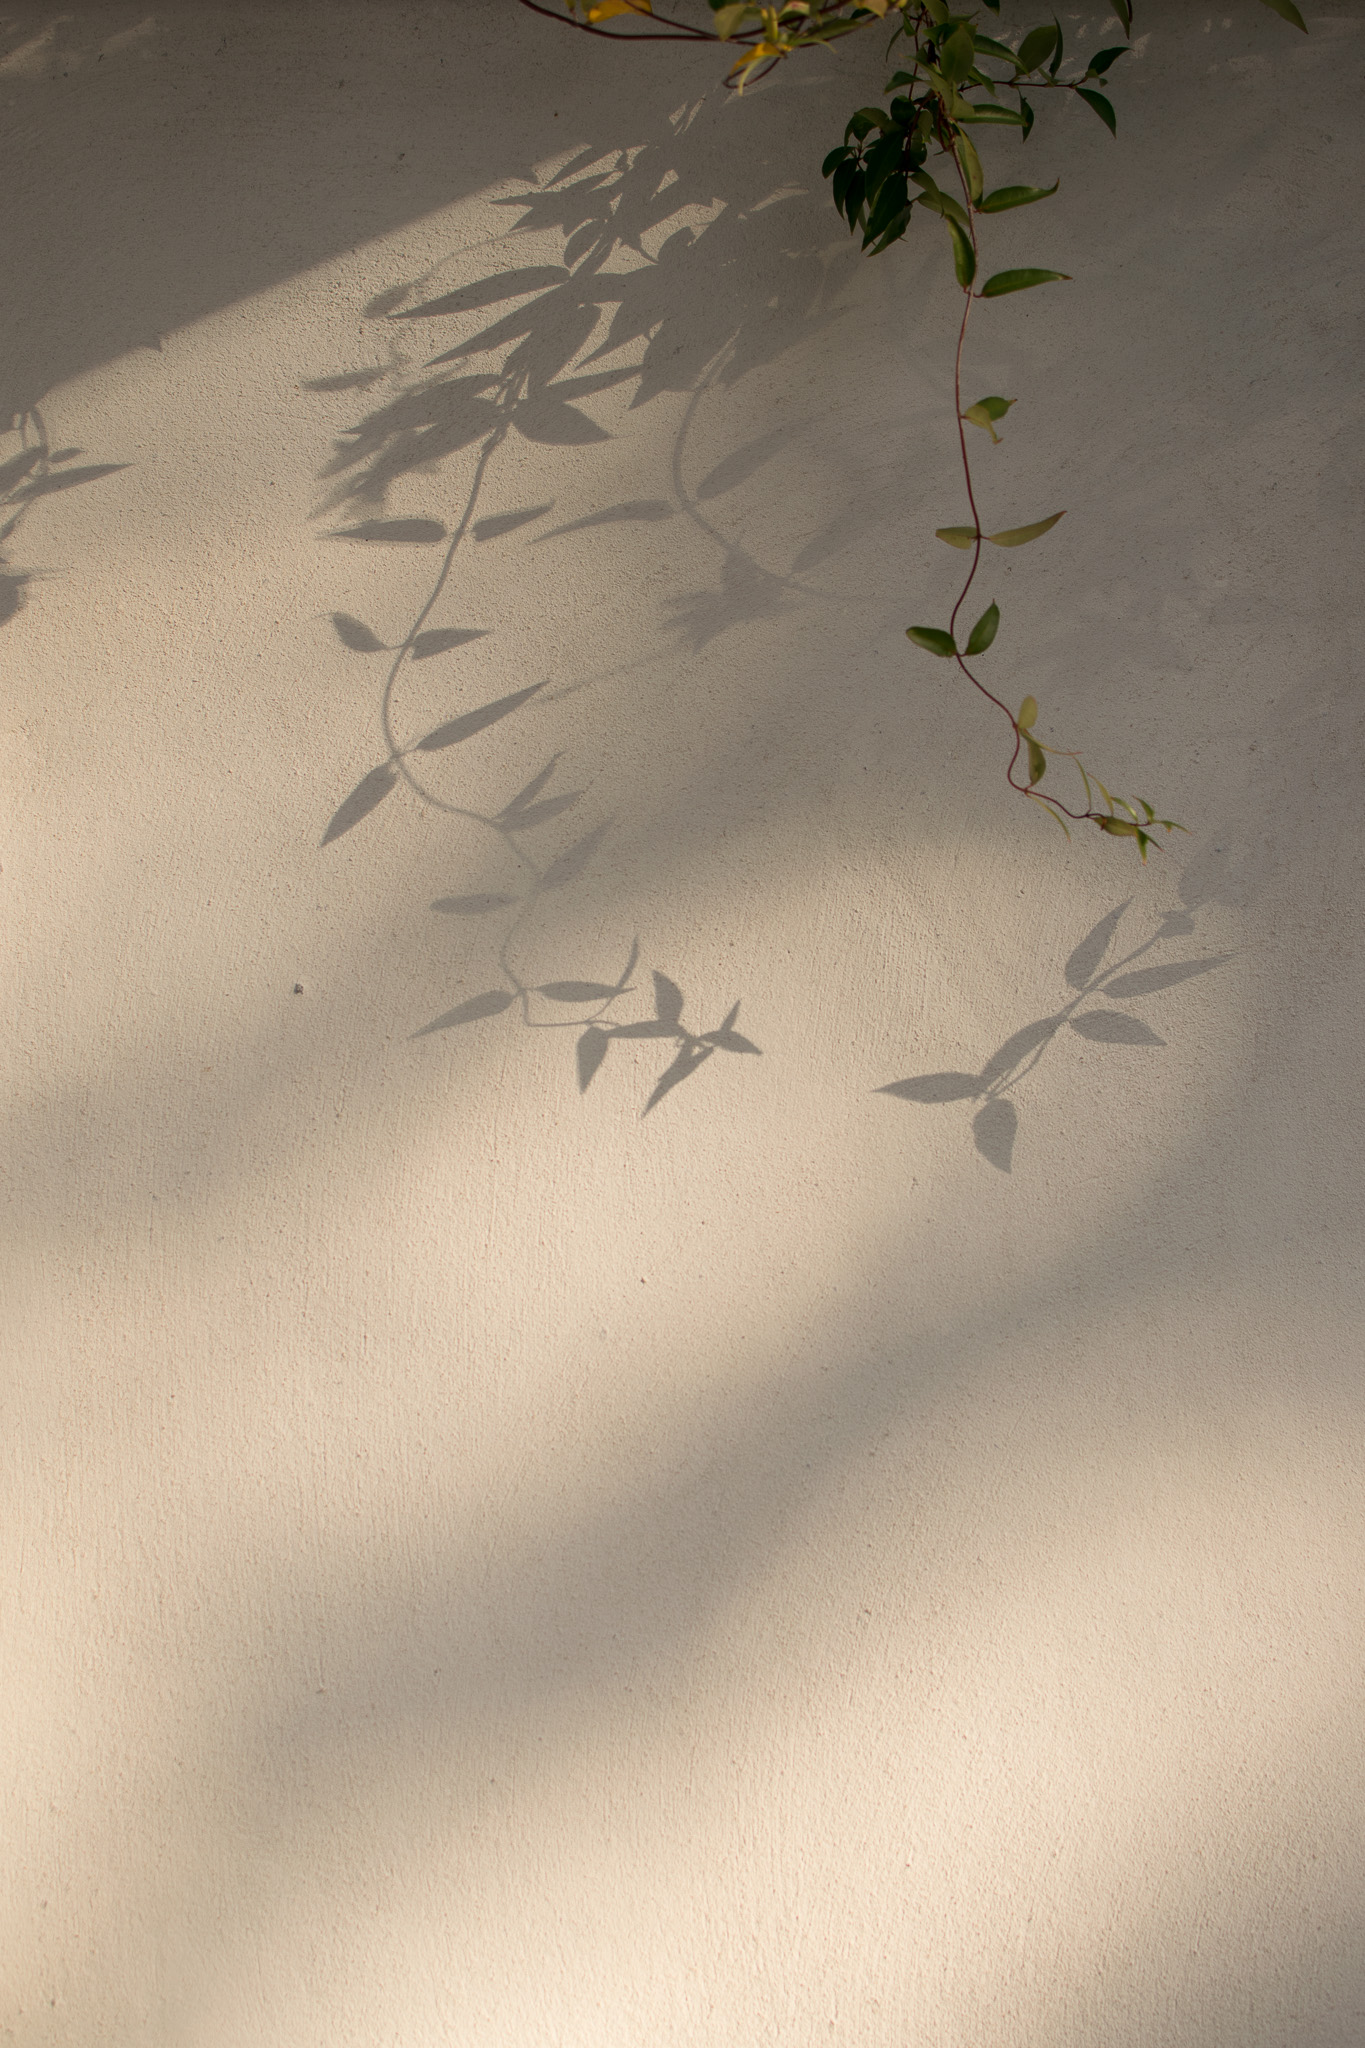 The vines cast a mysterious shadow on the courtyard wall.